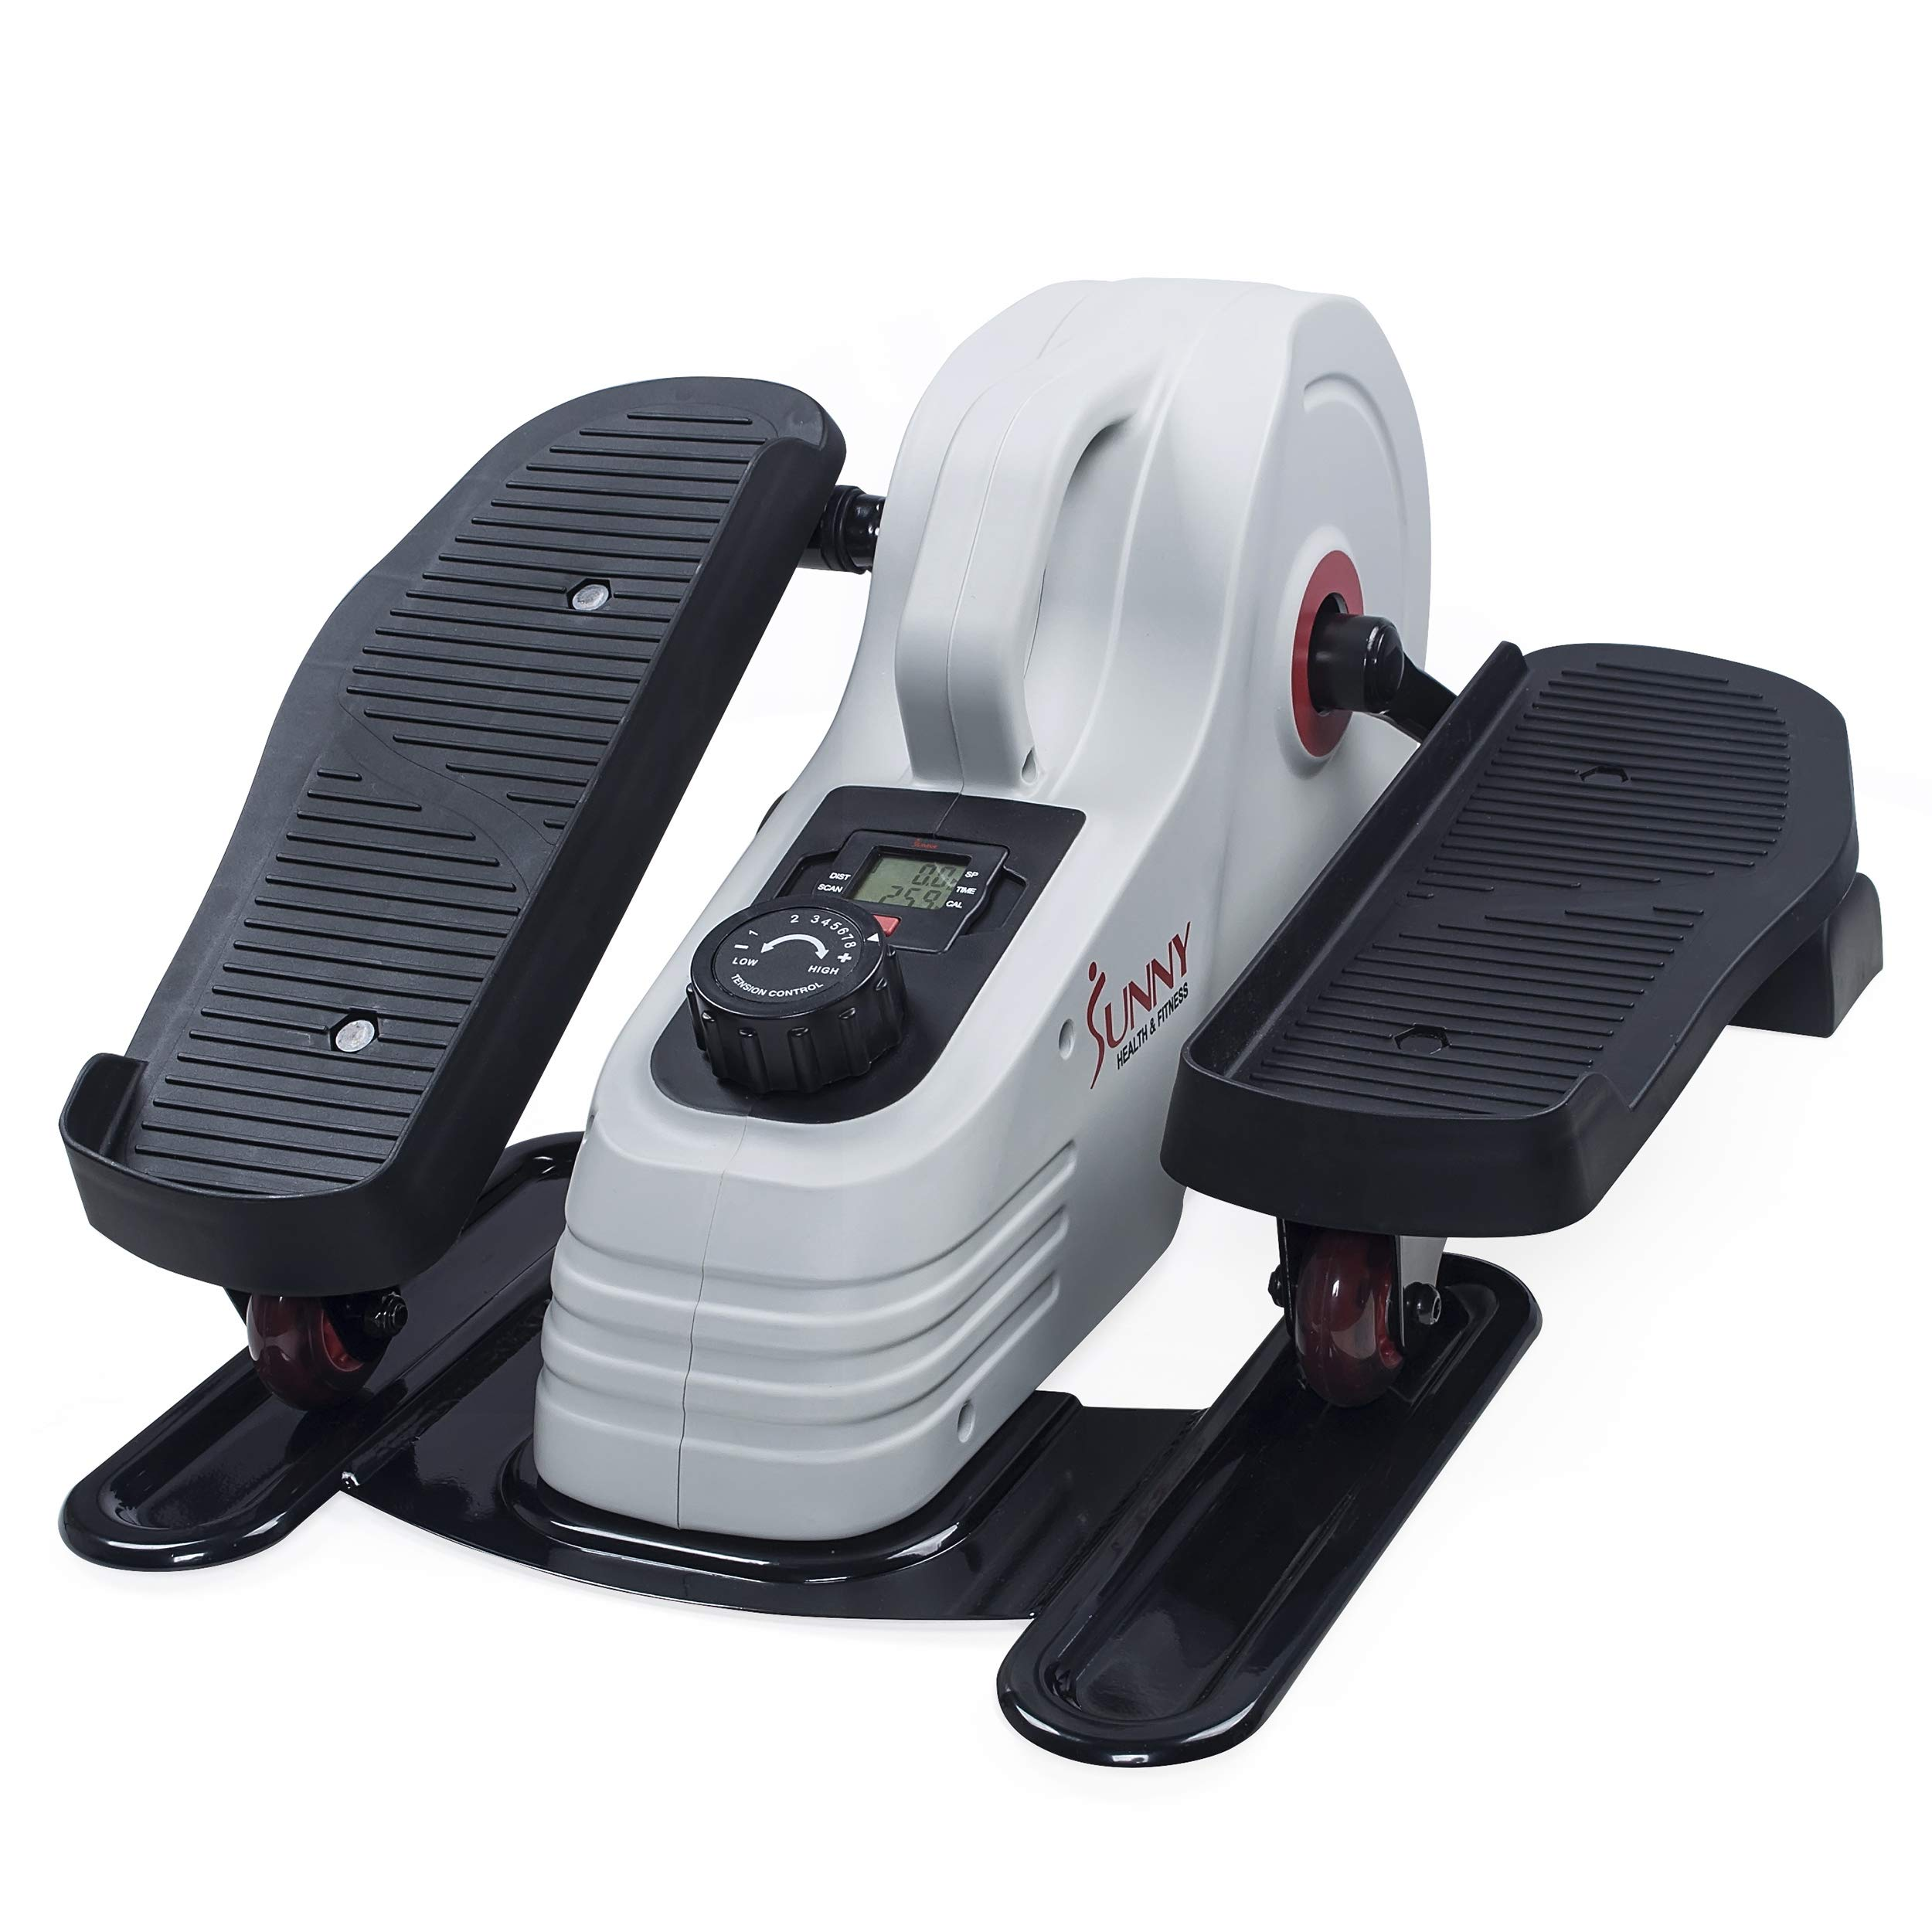 Sunny Health & Fitness Fully Assembled Magnetic Under Desk Elliptical - SF-E3872 by Sunny Health & Fitness (Image #2)